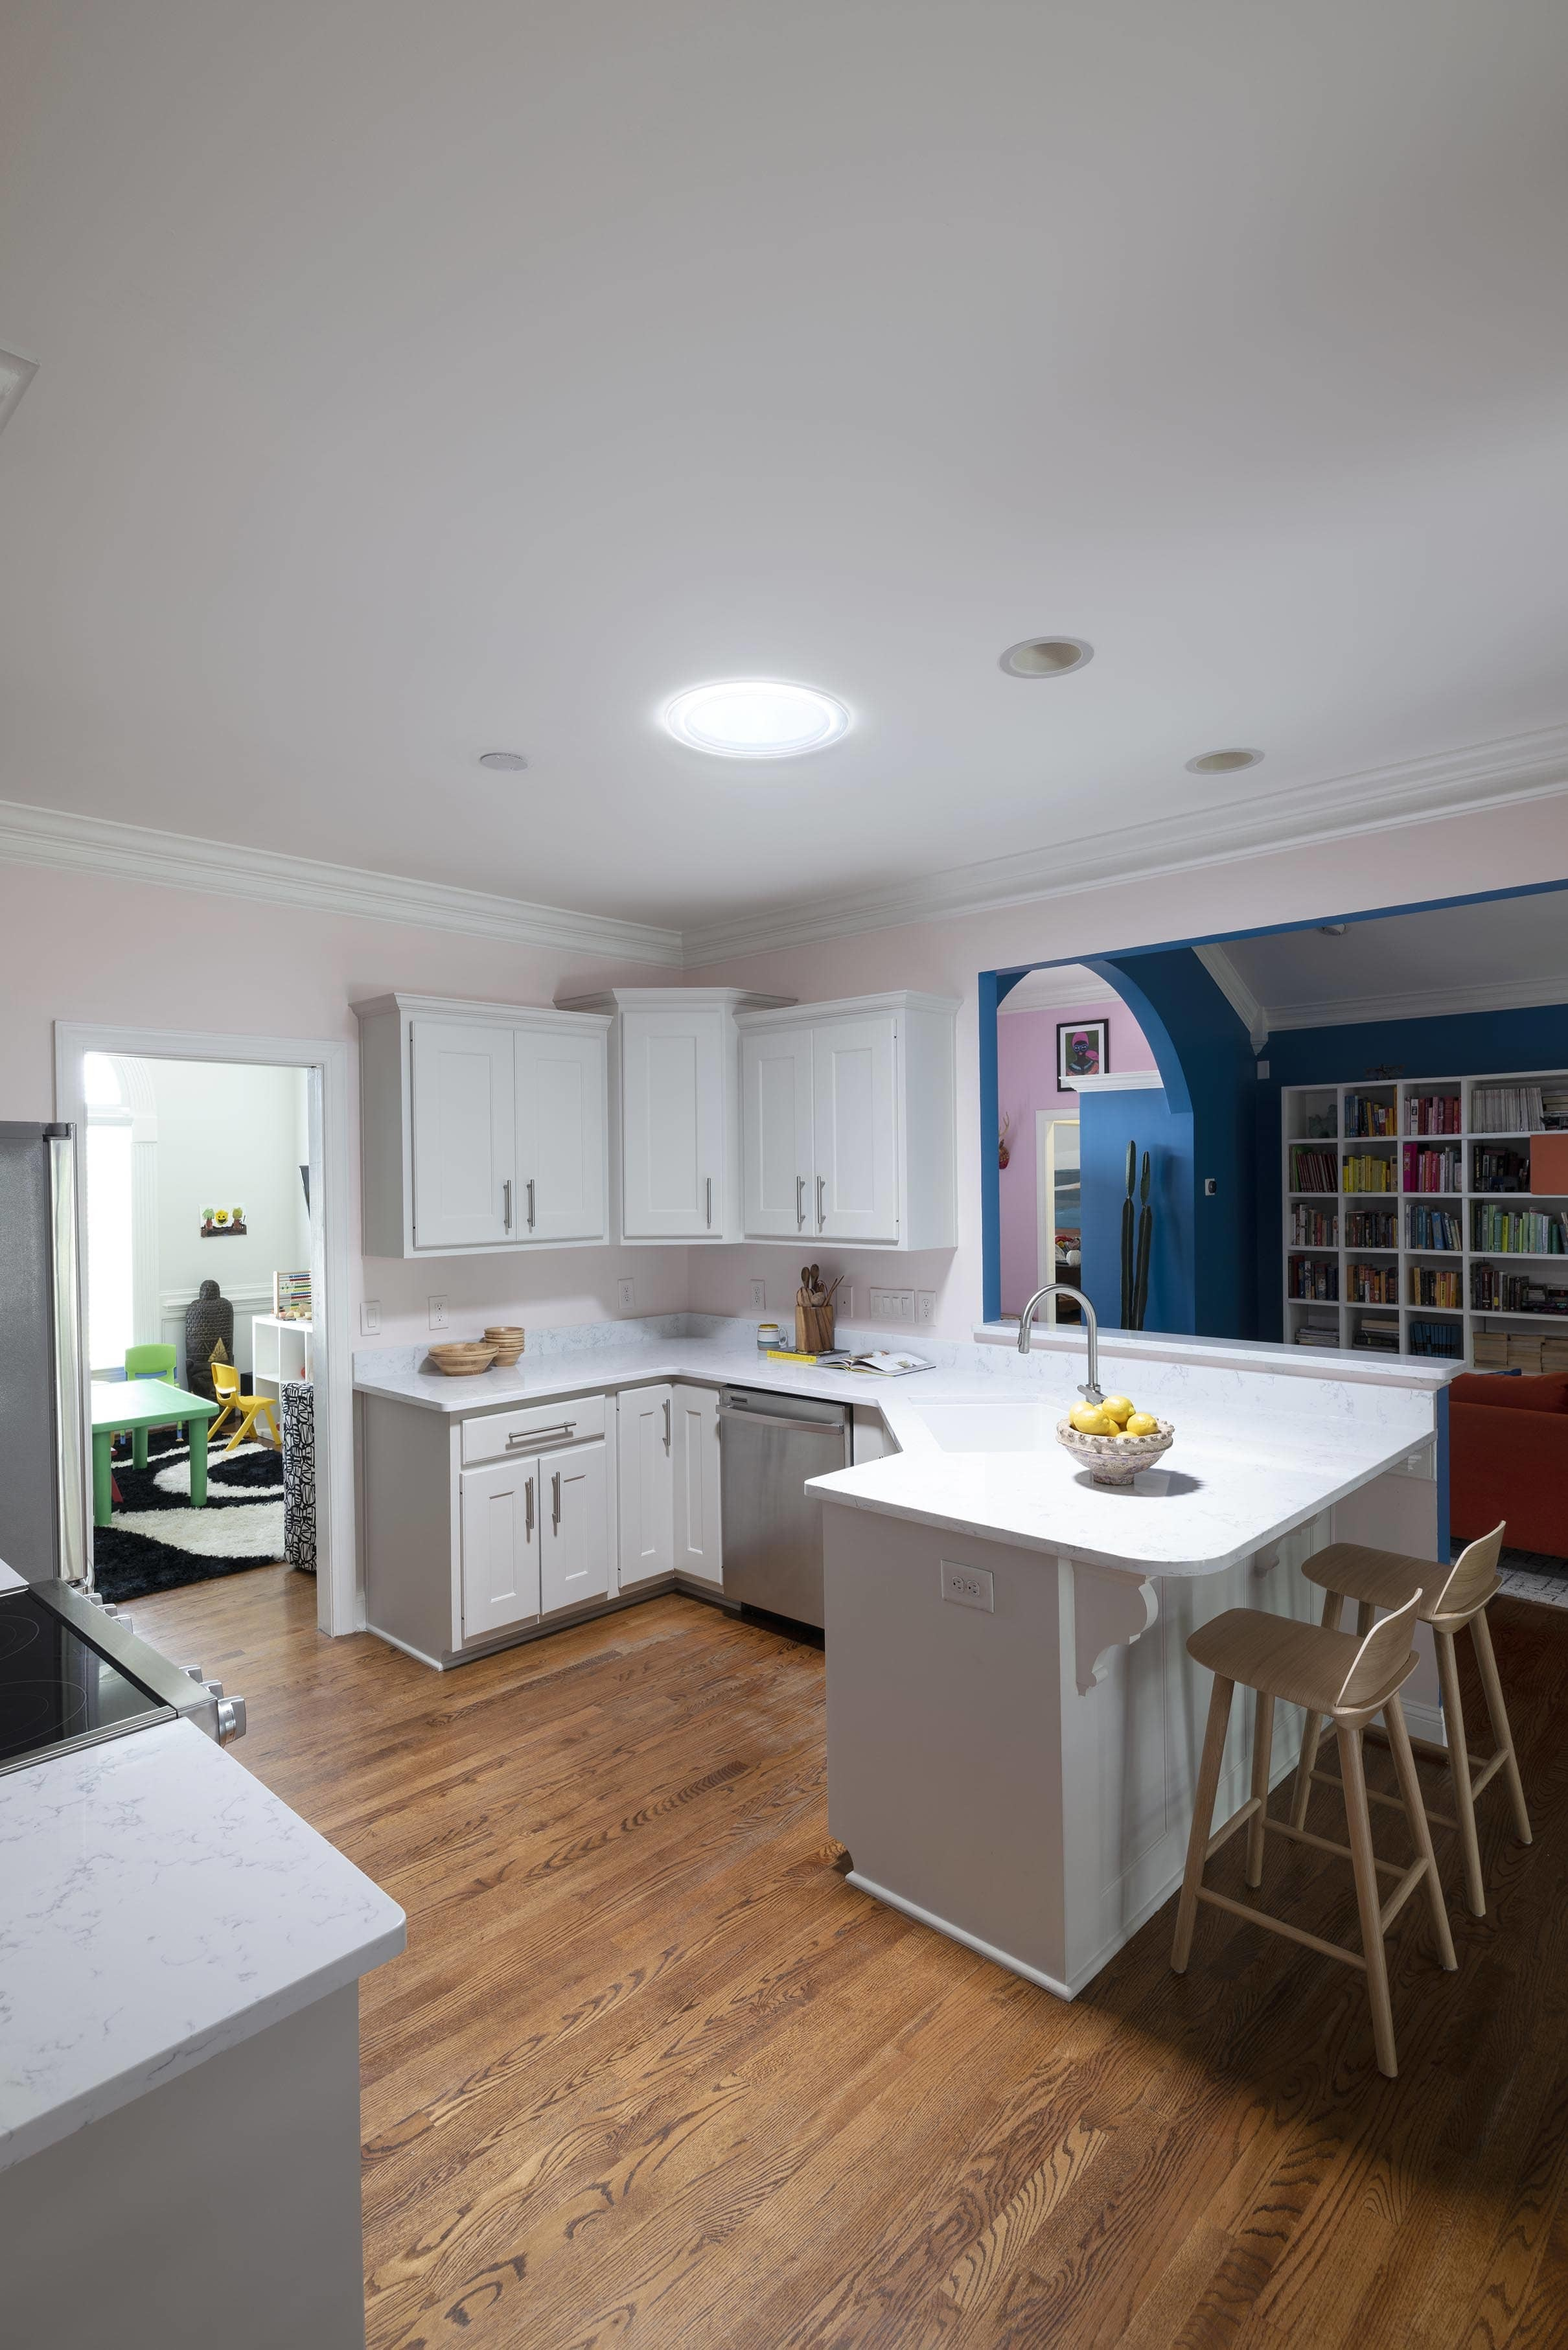 kitchen with light pink walls, white cabinets and a Sun Tunnel skylight with a blue living room in the background